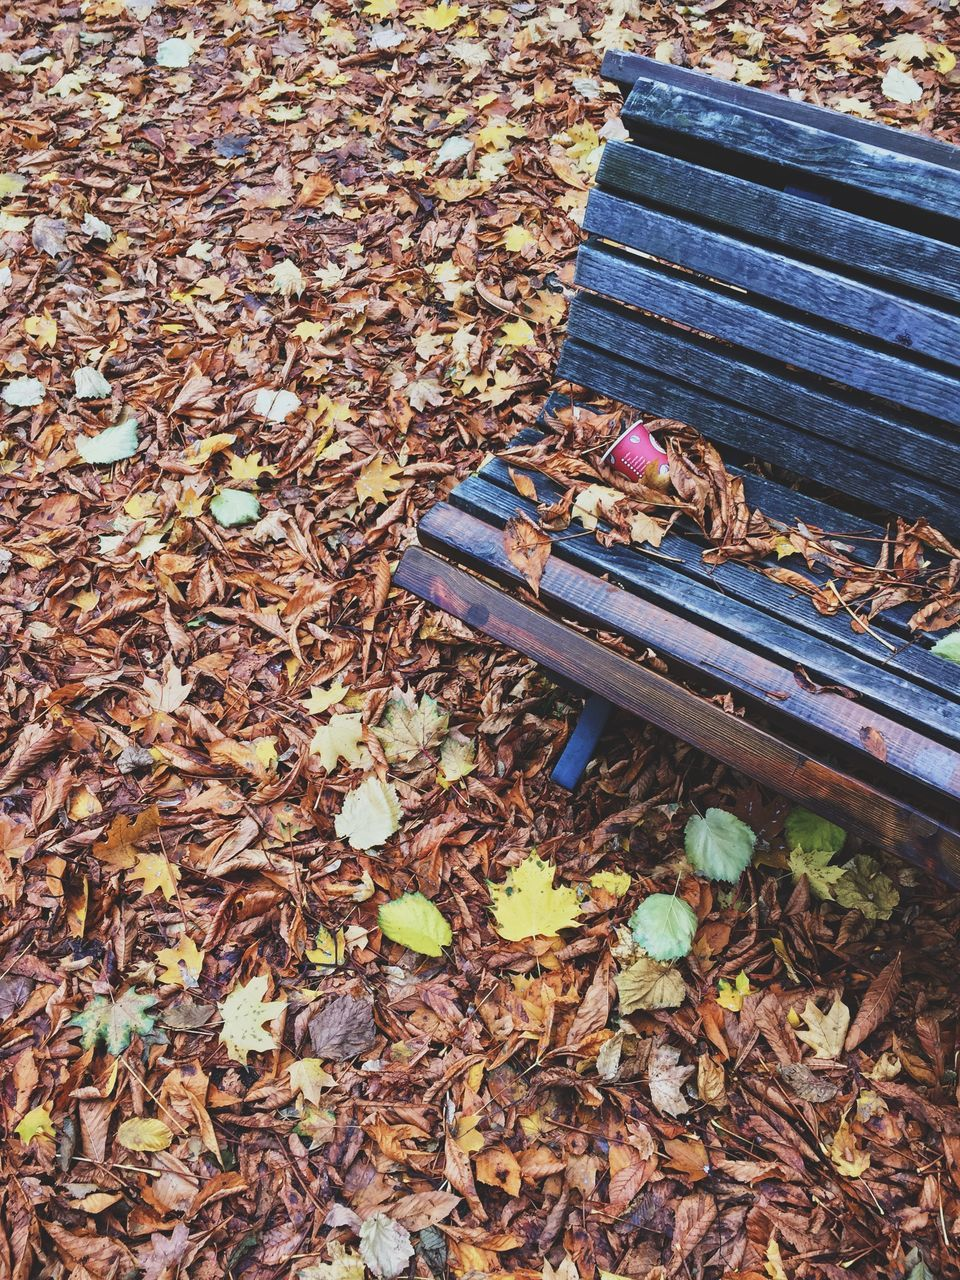 autumn, leaf, change, dry, leaves, no people, day, outdoors, fallen, nature, beauty in nature, close-up, maple